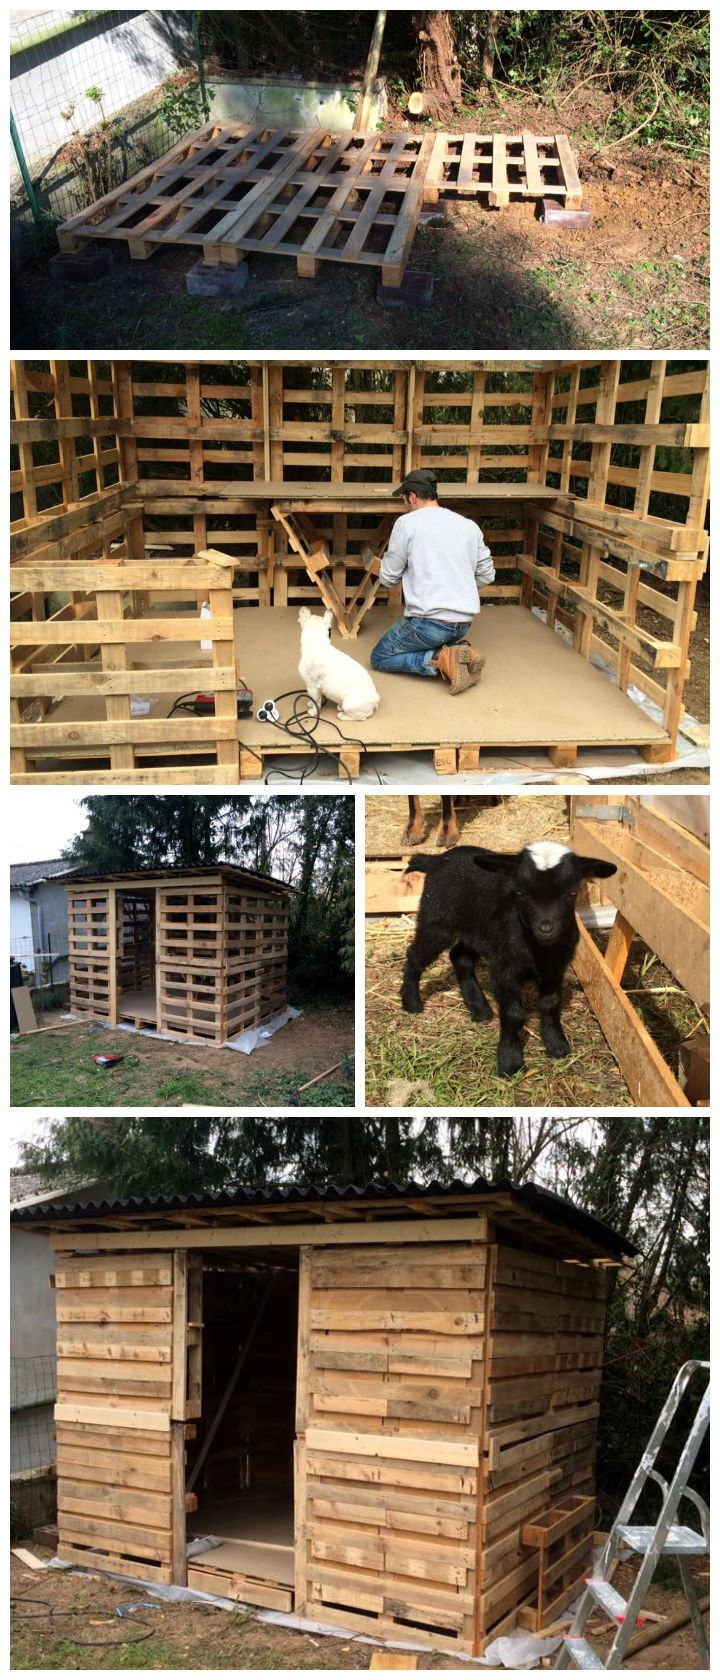 How To Build A Pallet Shed With Images Pallet Shed Pallet Diy Pallet Building